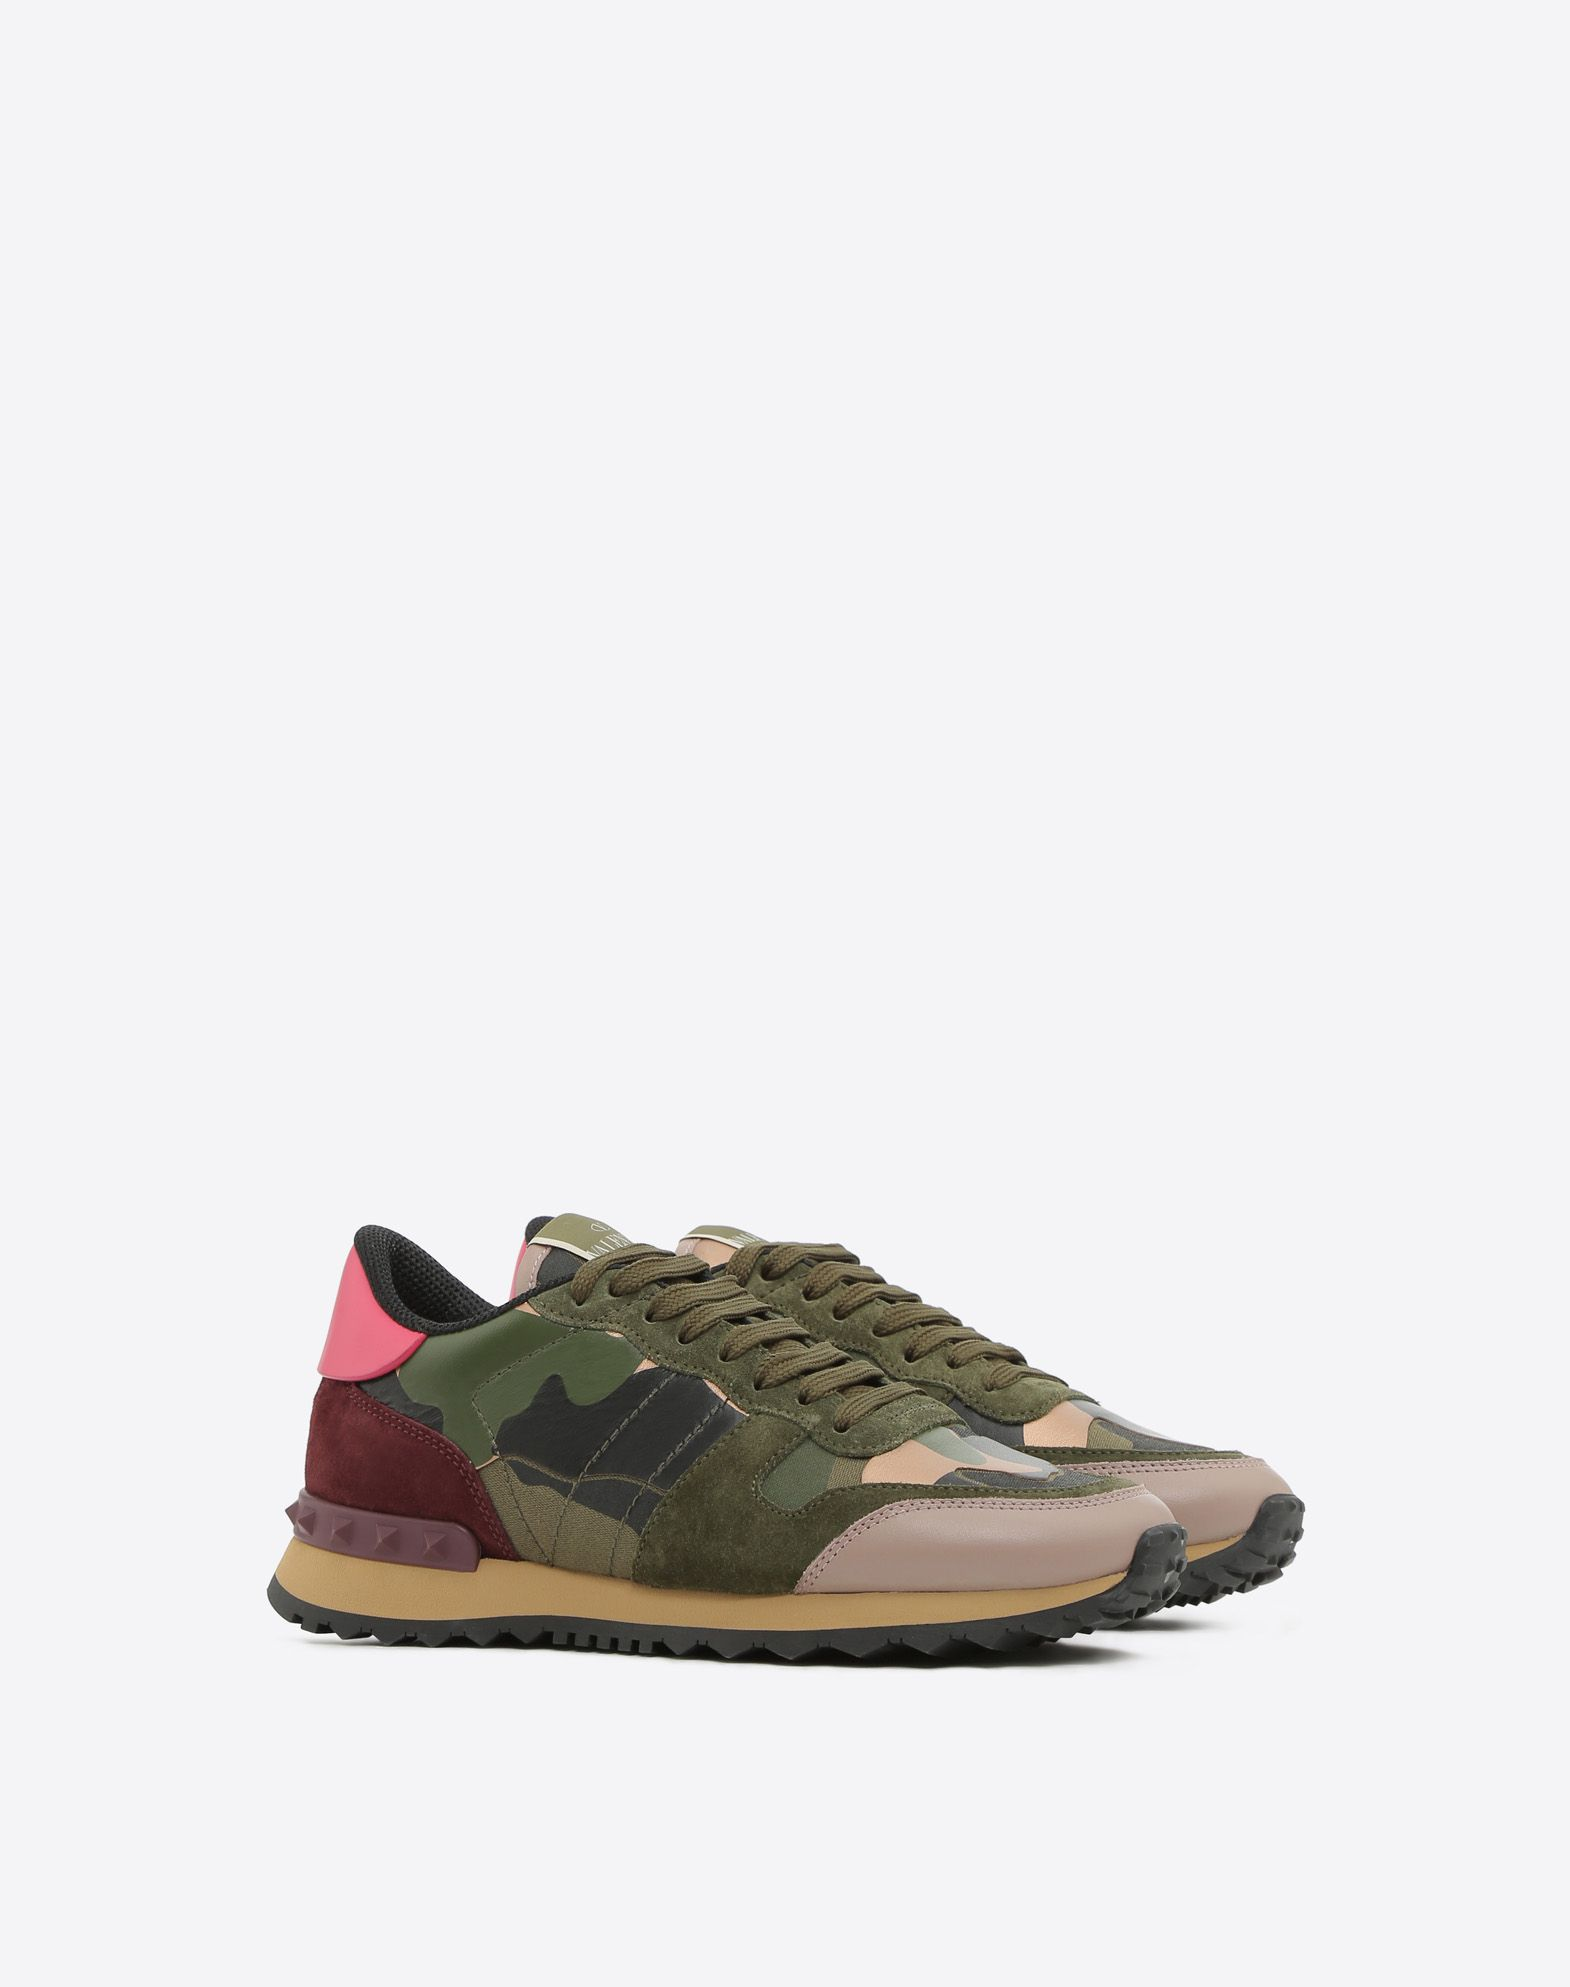 Valentino Women's Camouflage Low Top Sneaker cOD9g